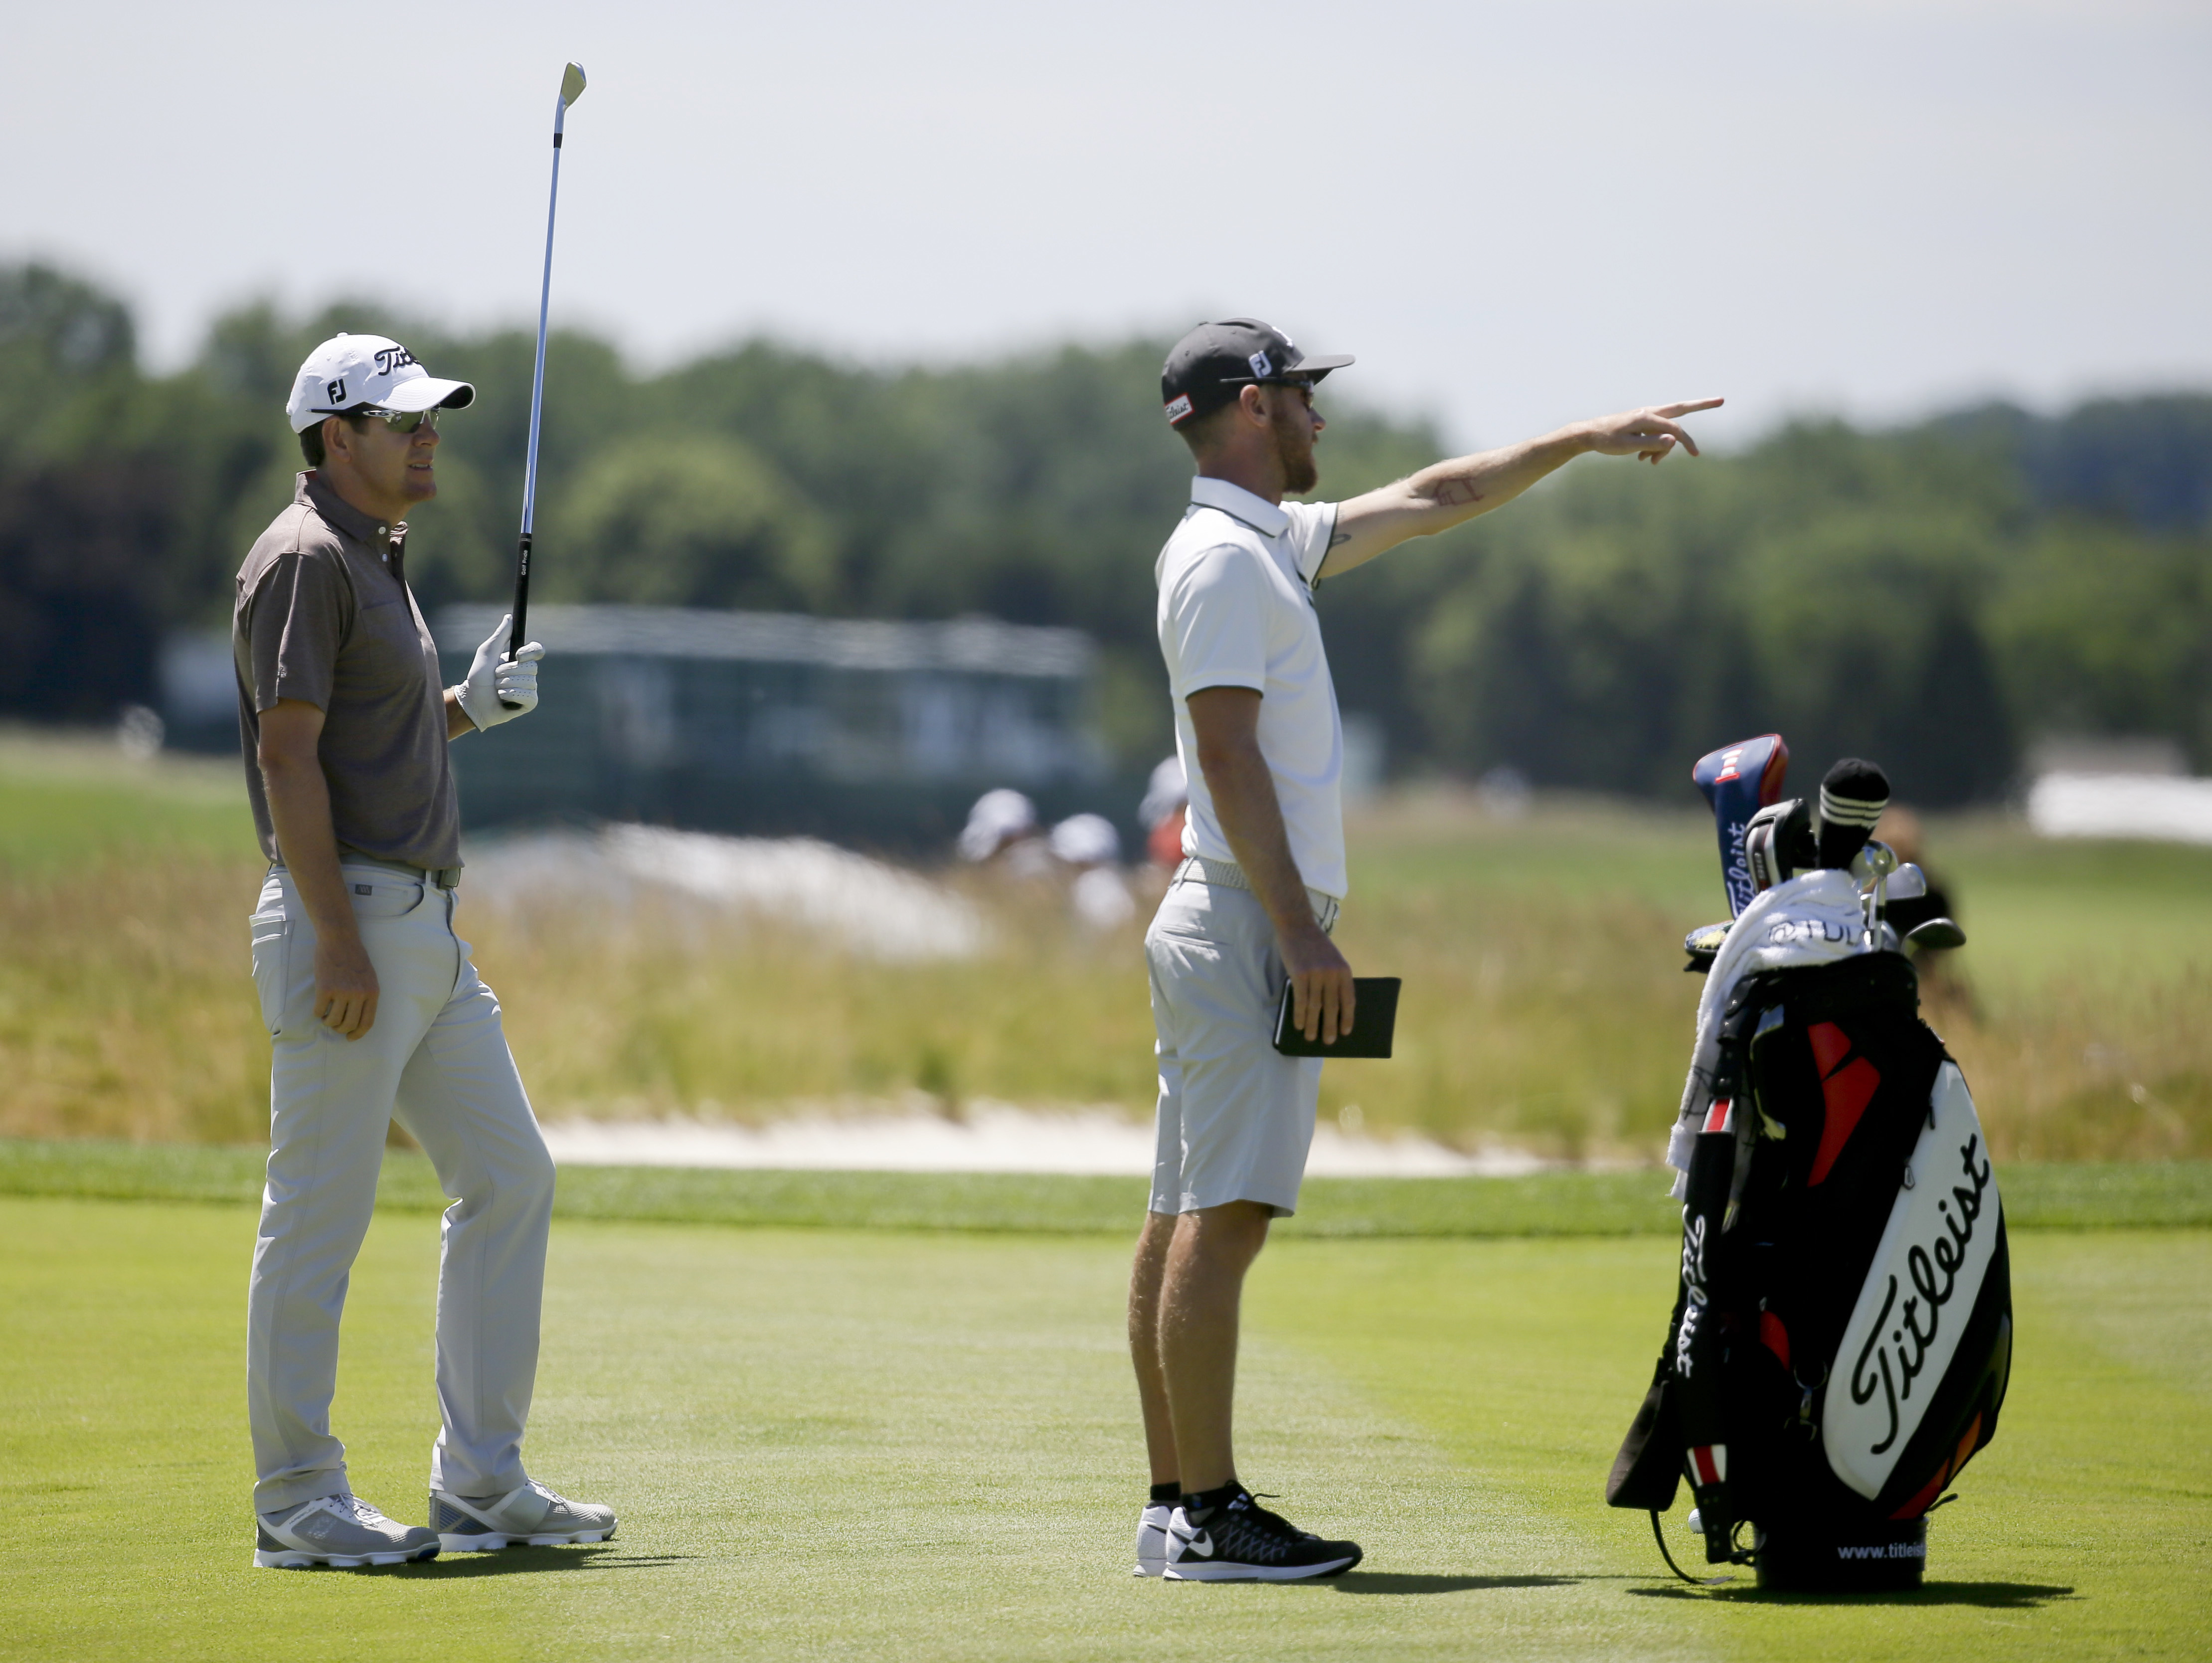 FILE - In this June 14, 2016, file photo, Aron Price, left, works with his caddie. Nick Flanagan, on the third hole during a practice round for the U.S. Open golf championship at Oakmont Country Club in Oakmont, Pa. For the second straight year, Aussies F